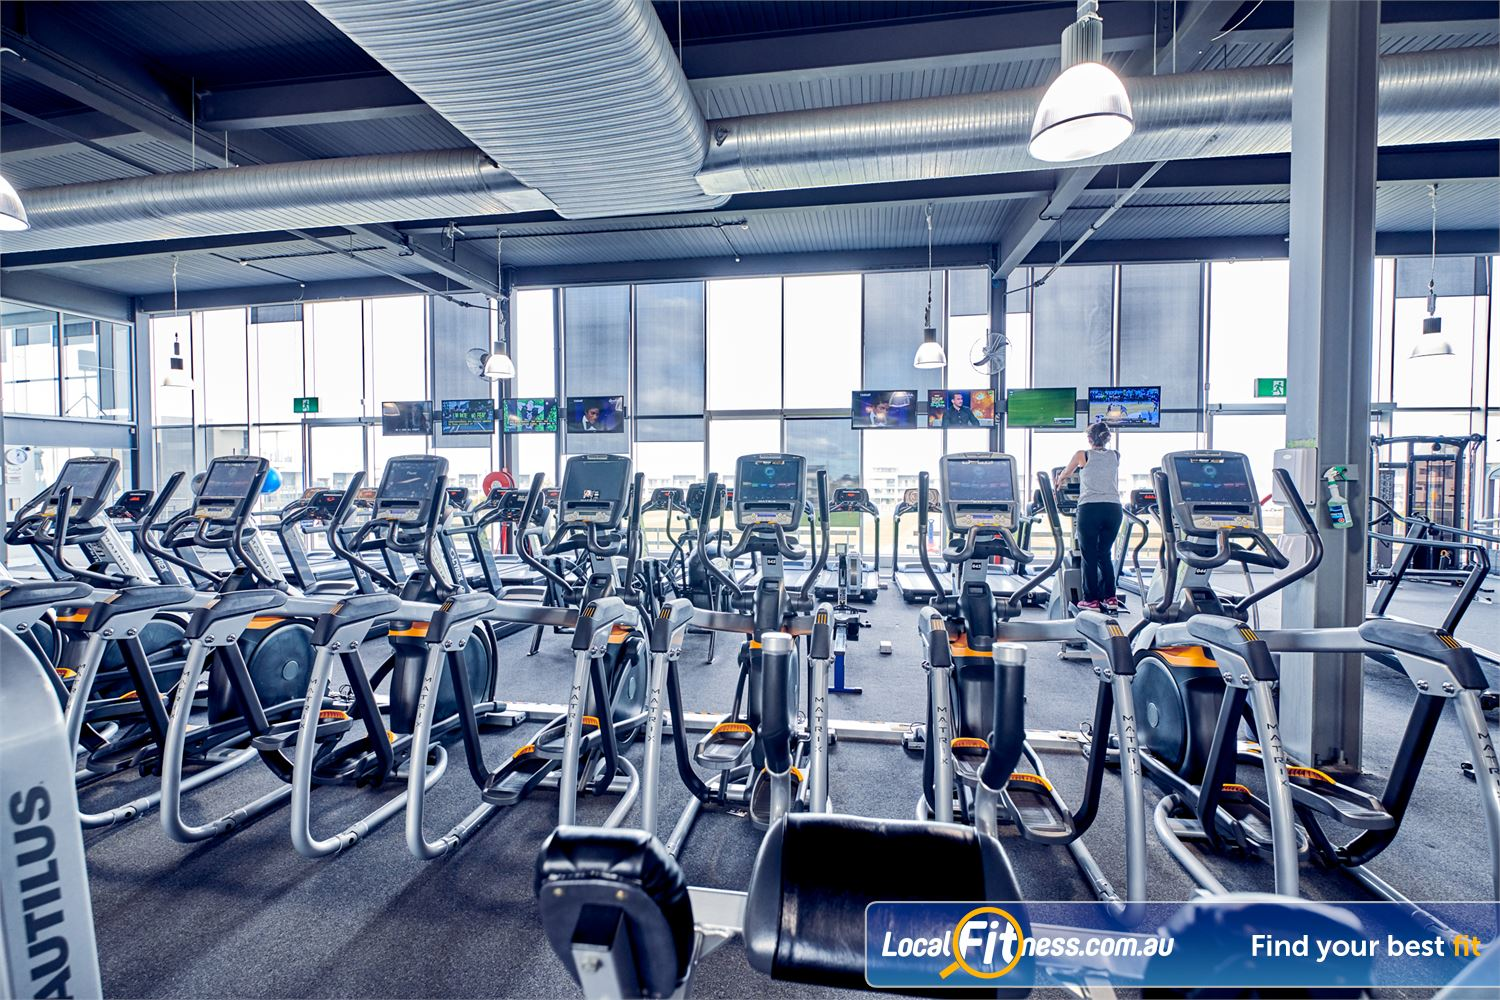 Goodlife Health Clubs Waverley Park Near Noble Park Rows of state of the art cardio from Cybex, MATRIX and more.